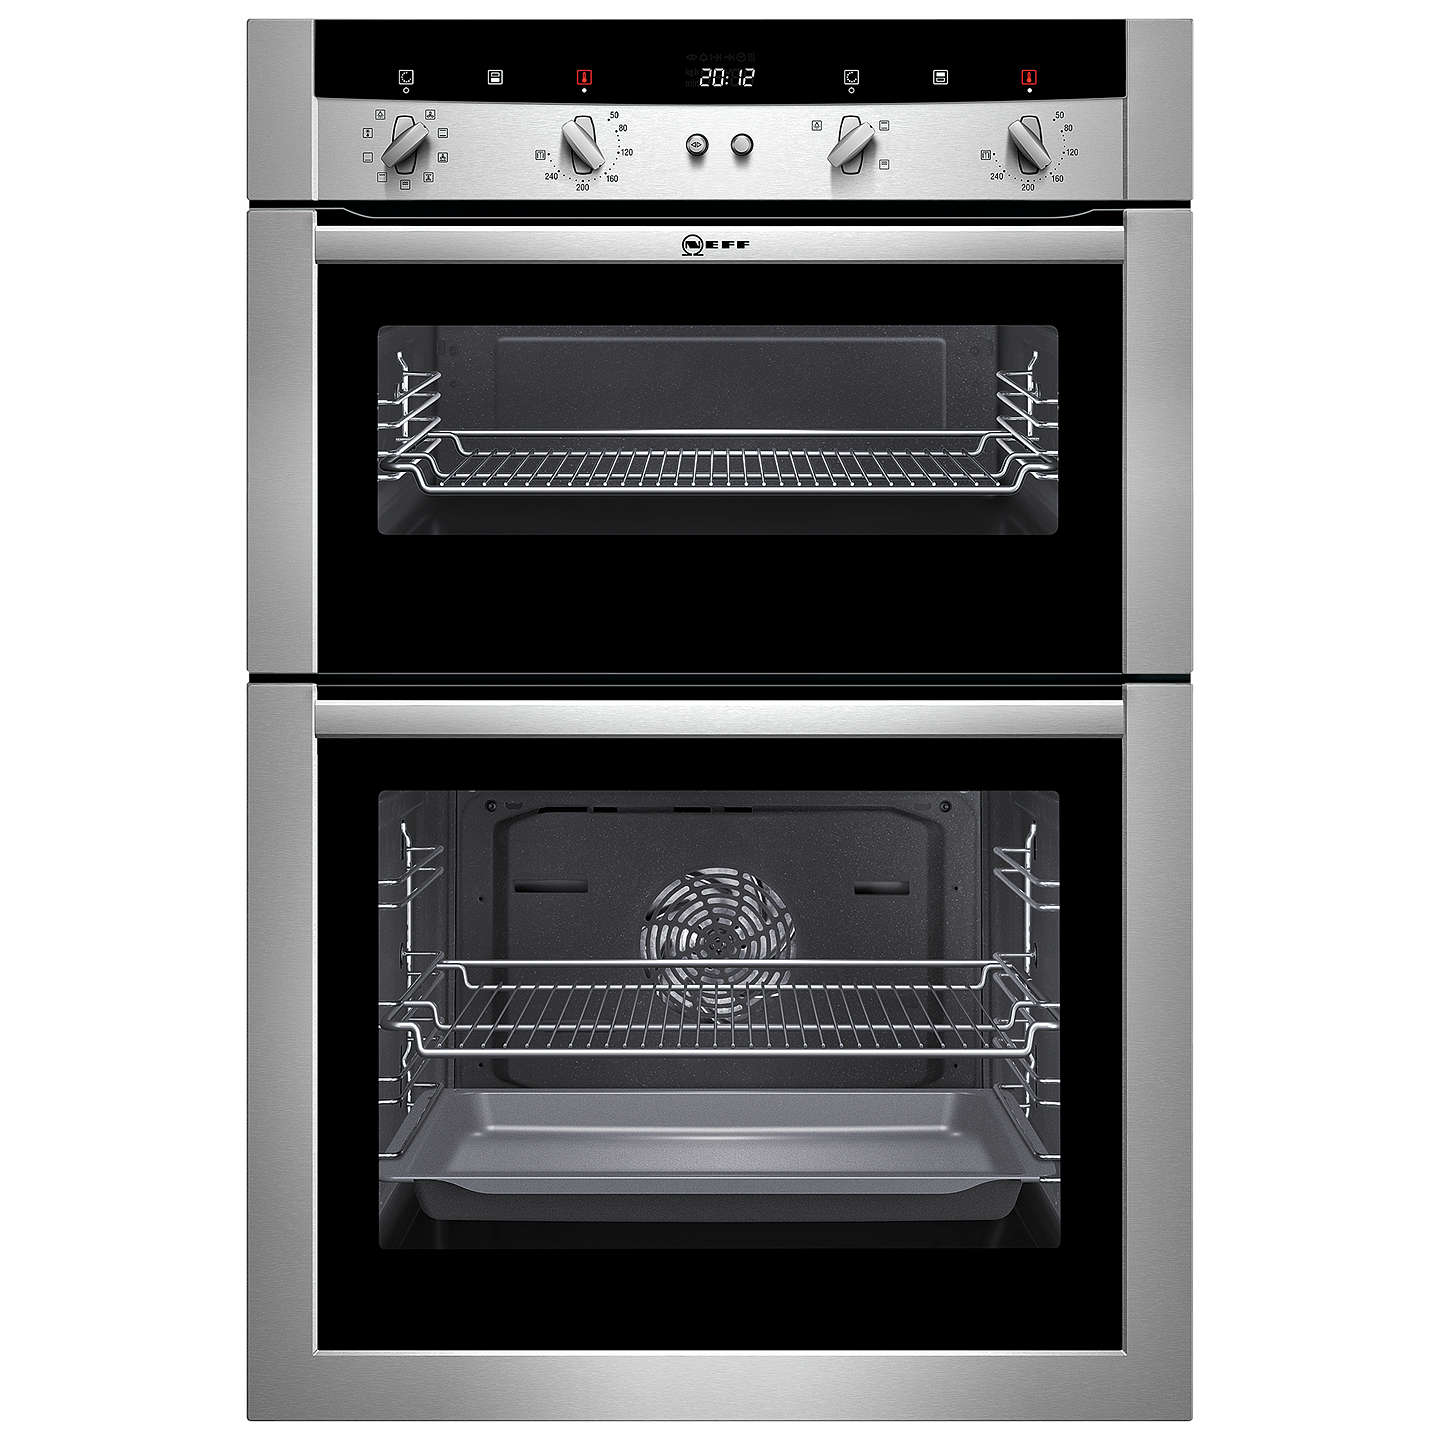 neff u15m52n3gb double electric oven stainless steel at john lewis rh johnlewis com